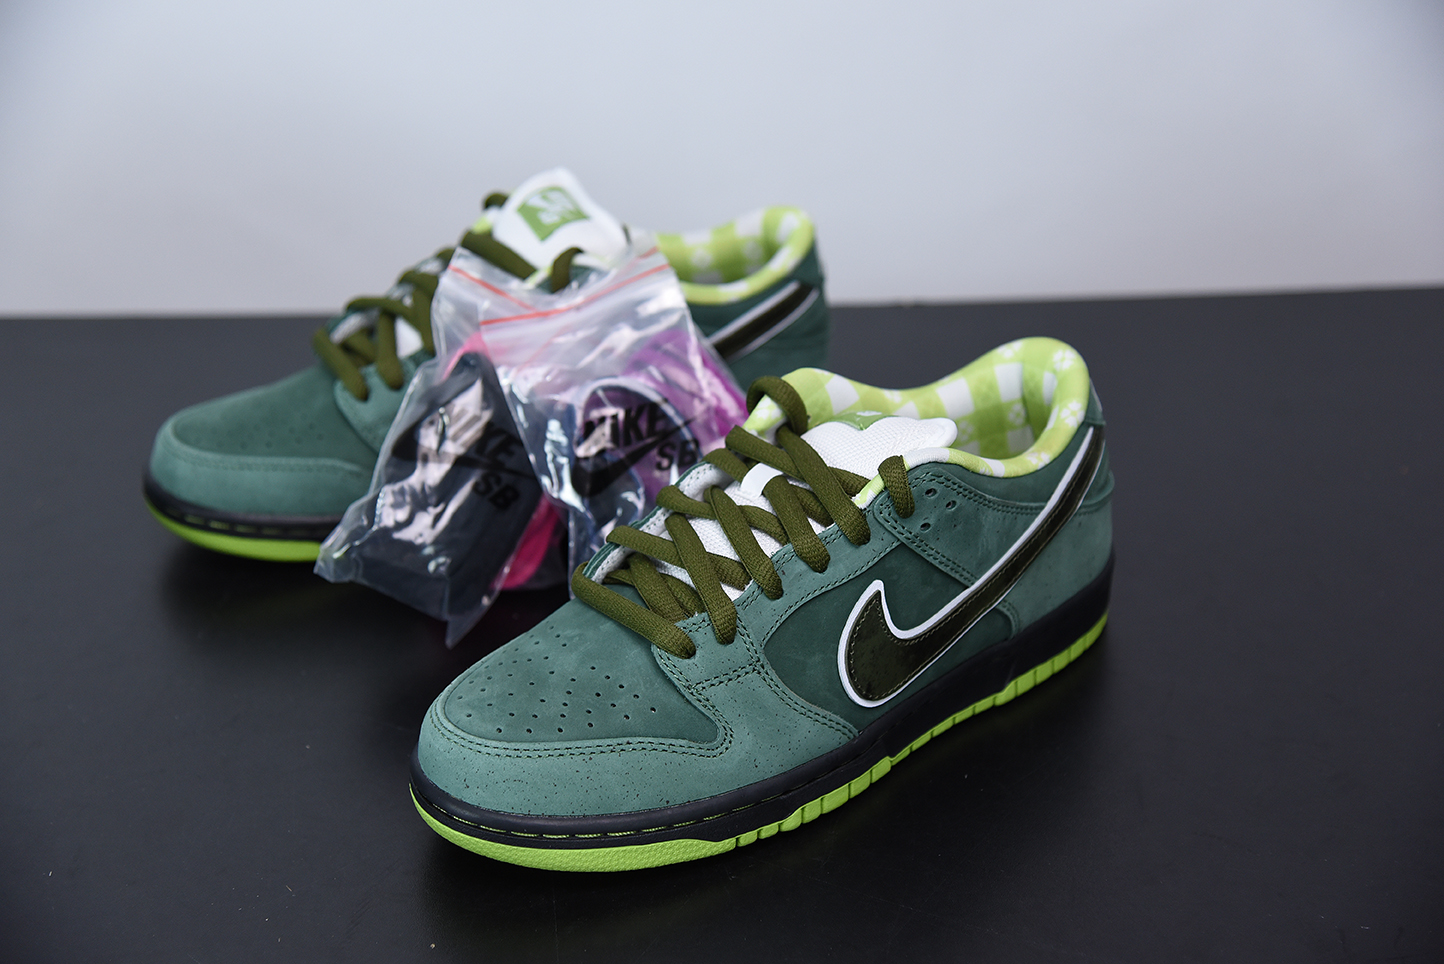 I02C6 Concepts x NK SB Dunk Low 绿龙虾 货号:BV1310-337 尺码:40-47.5